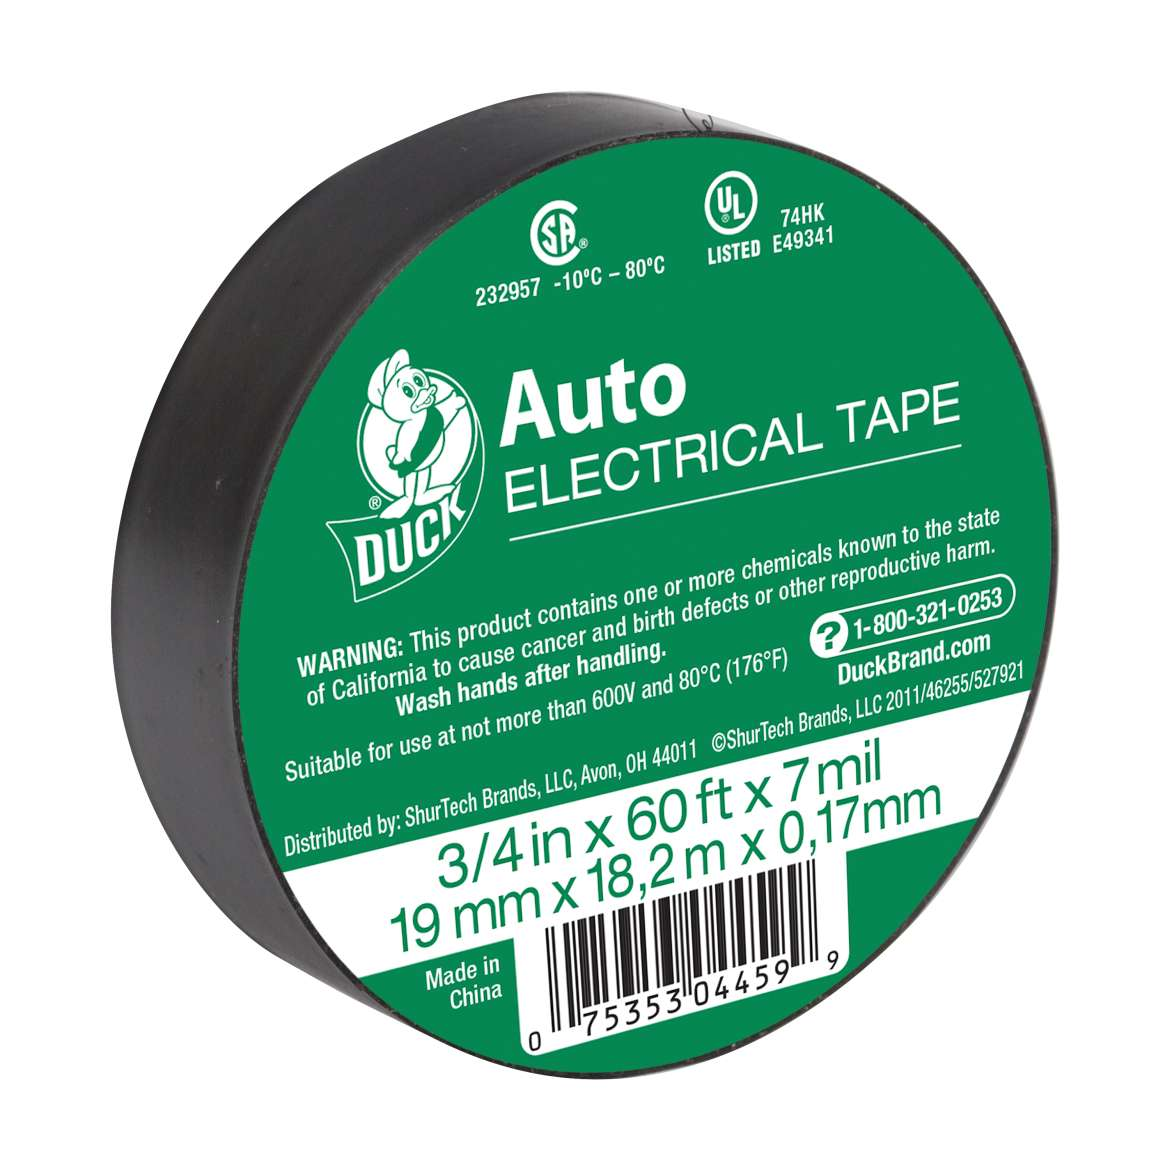 Auto Electrical Tape Image